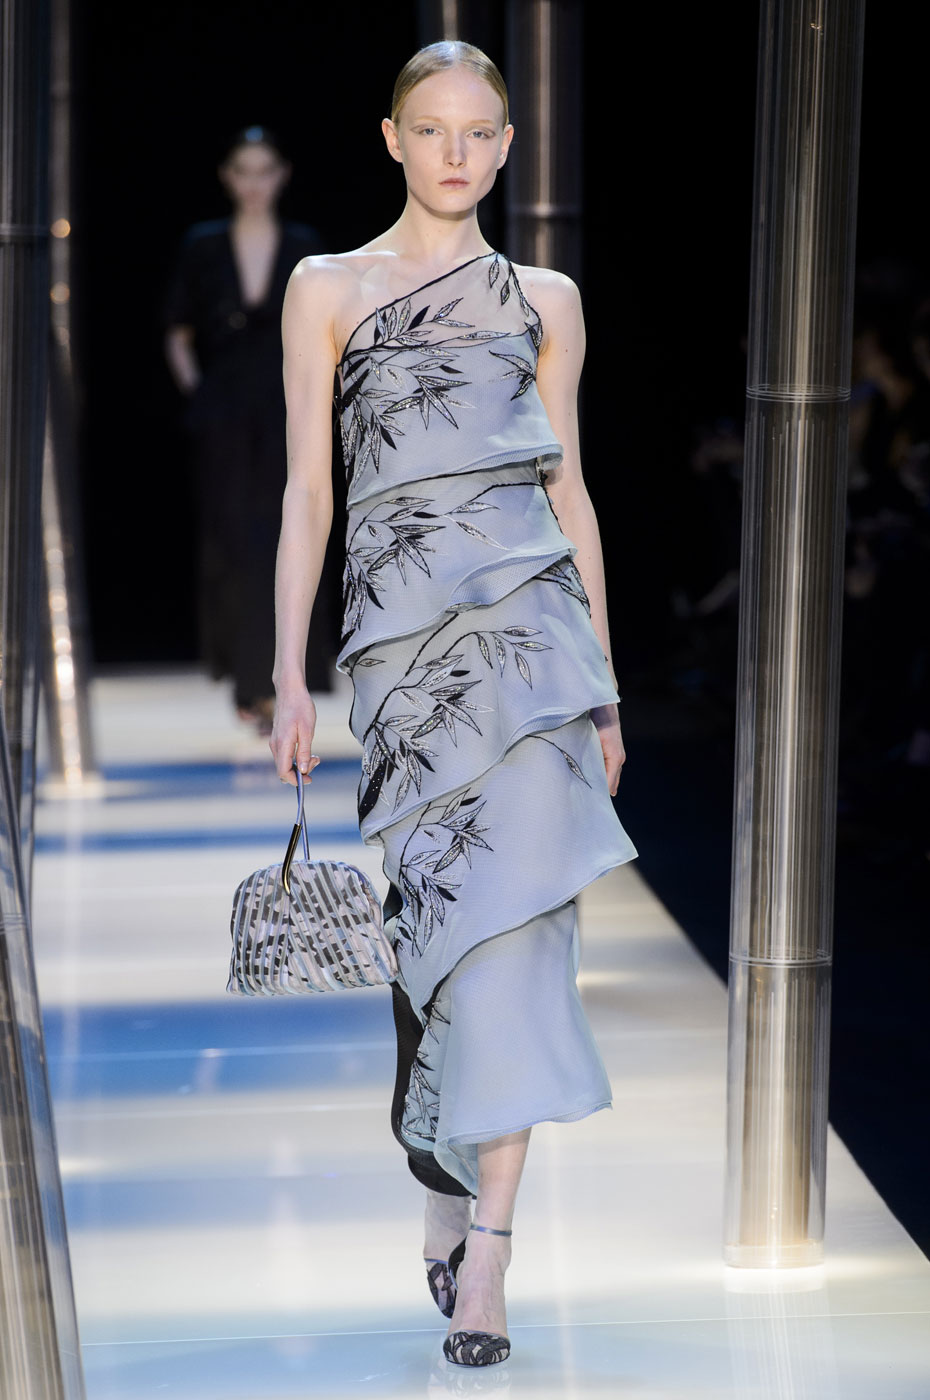 Giorgio-armani-Prive-fashion-runway-show-haute-couture-paris-spring-2015-the-impression-095